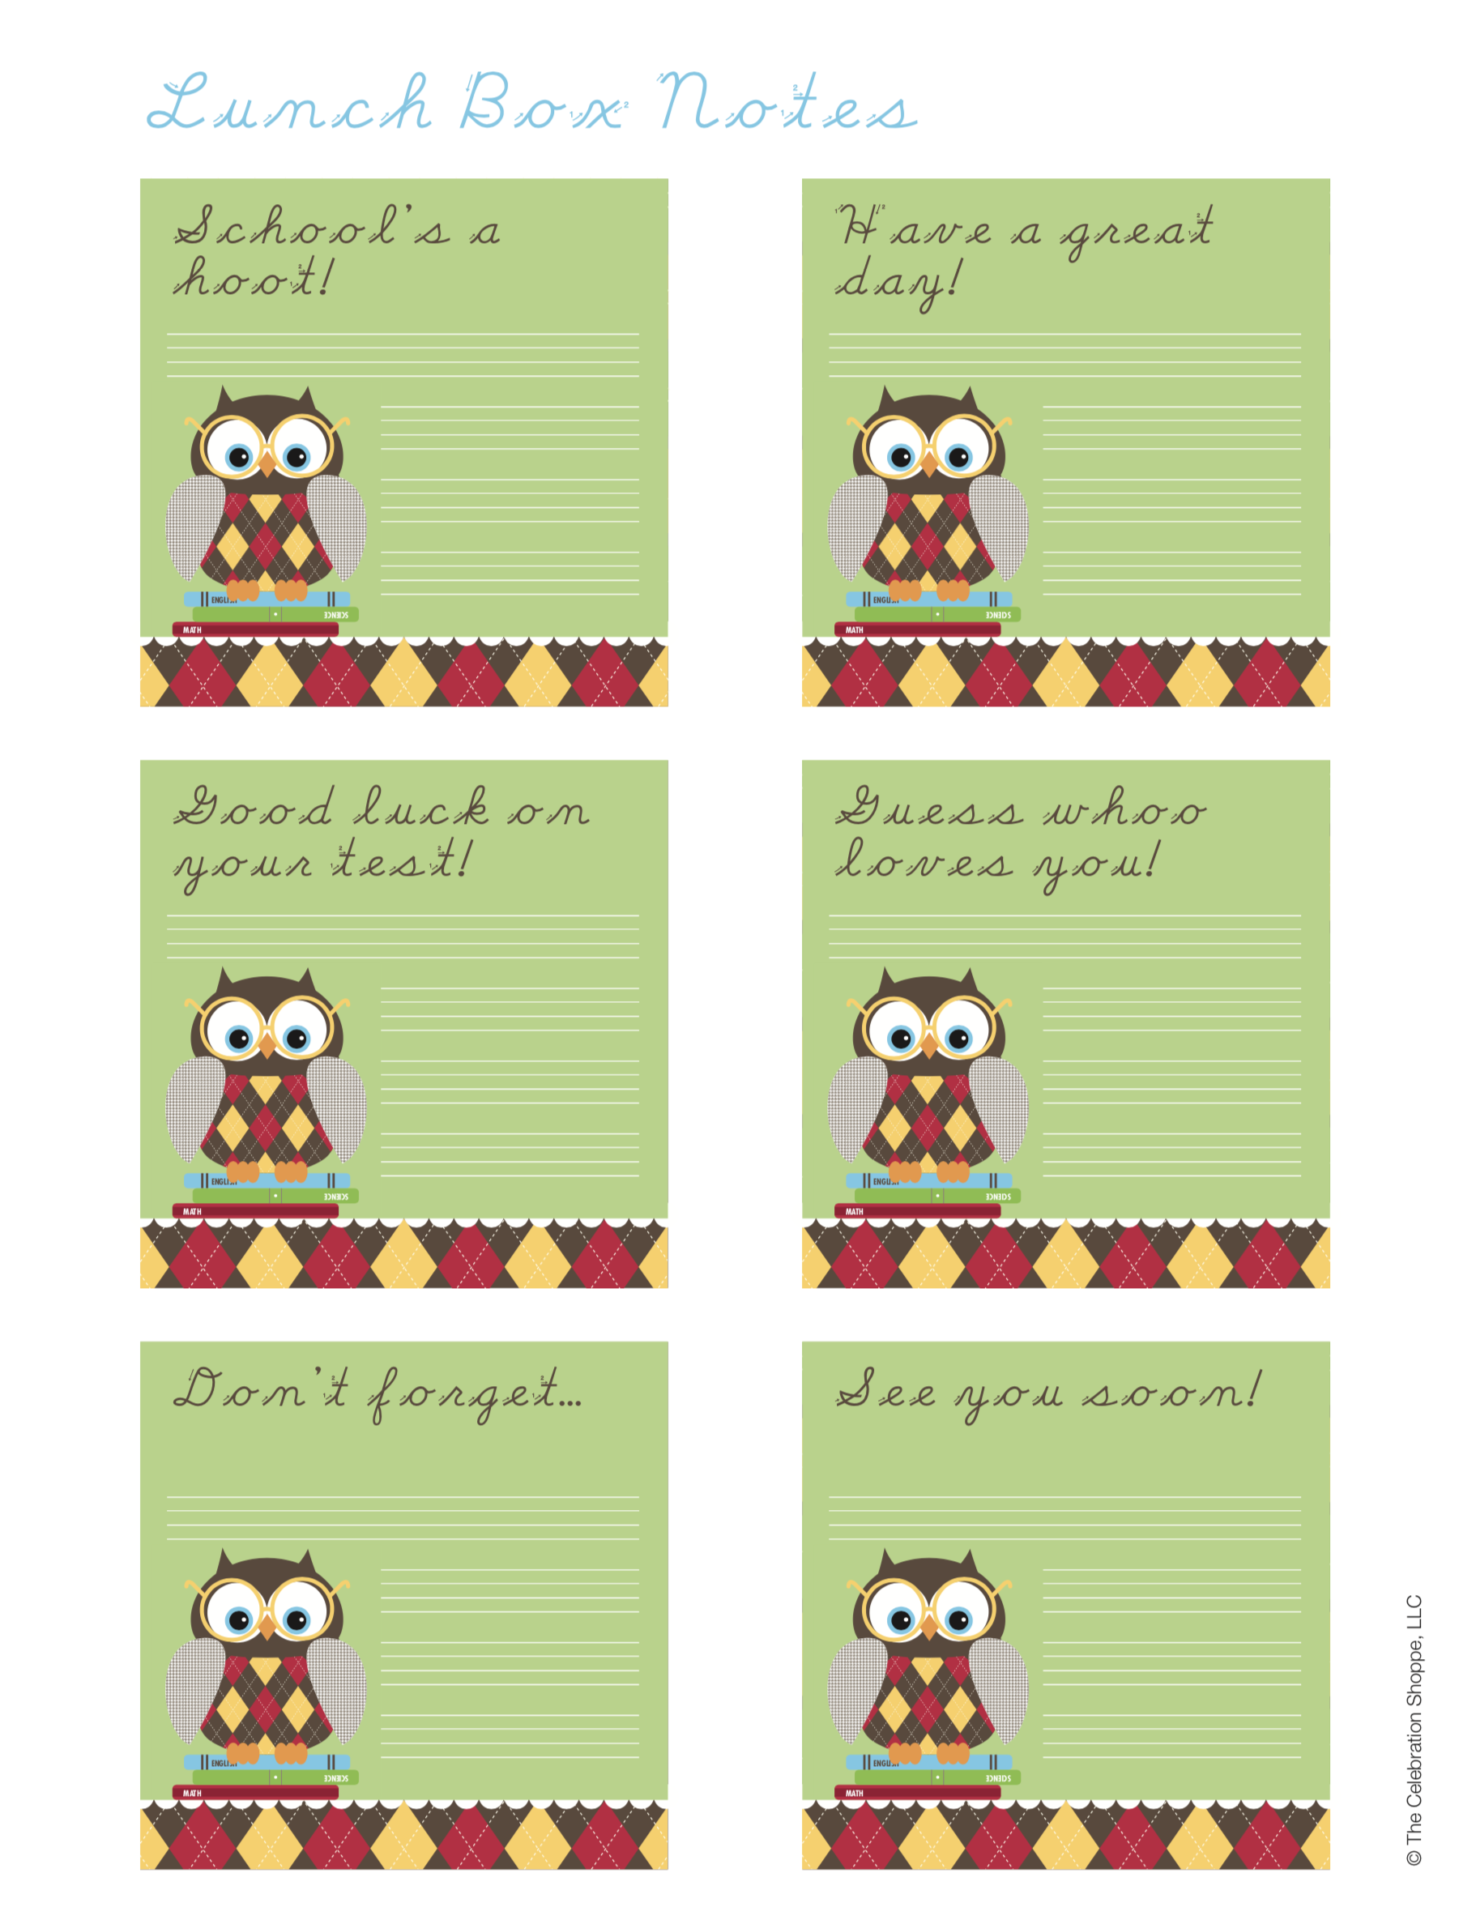 Lunch box notes kim byers